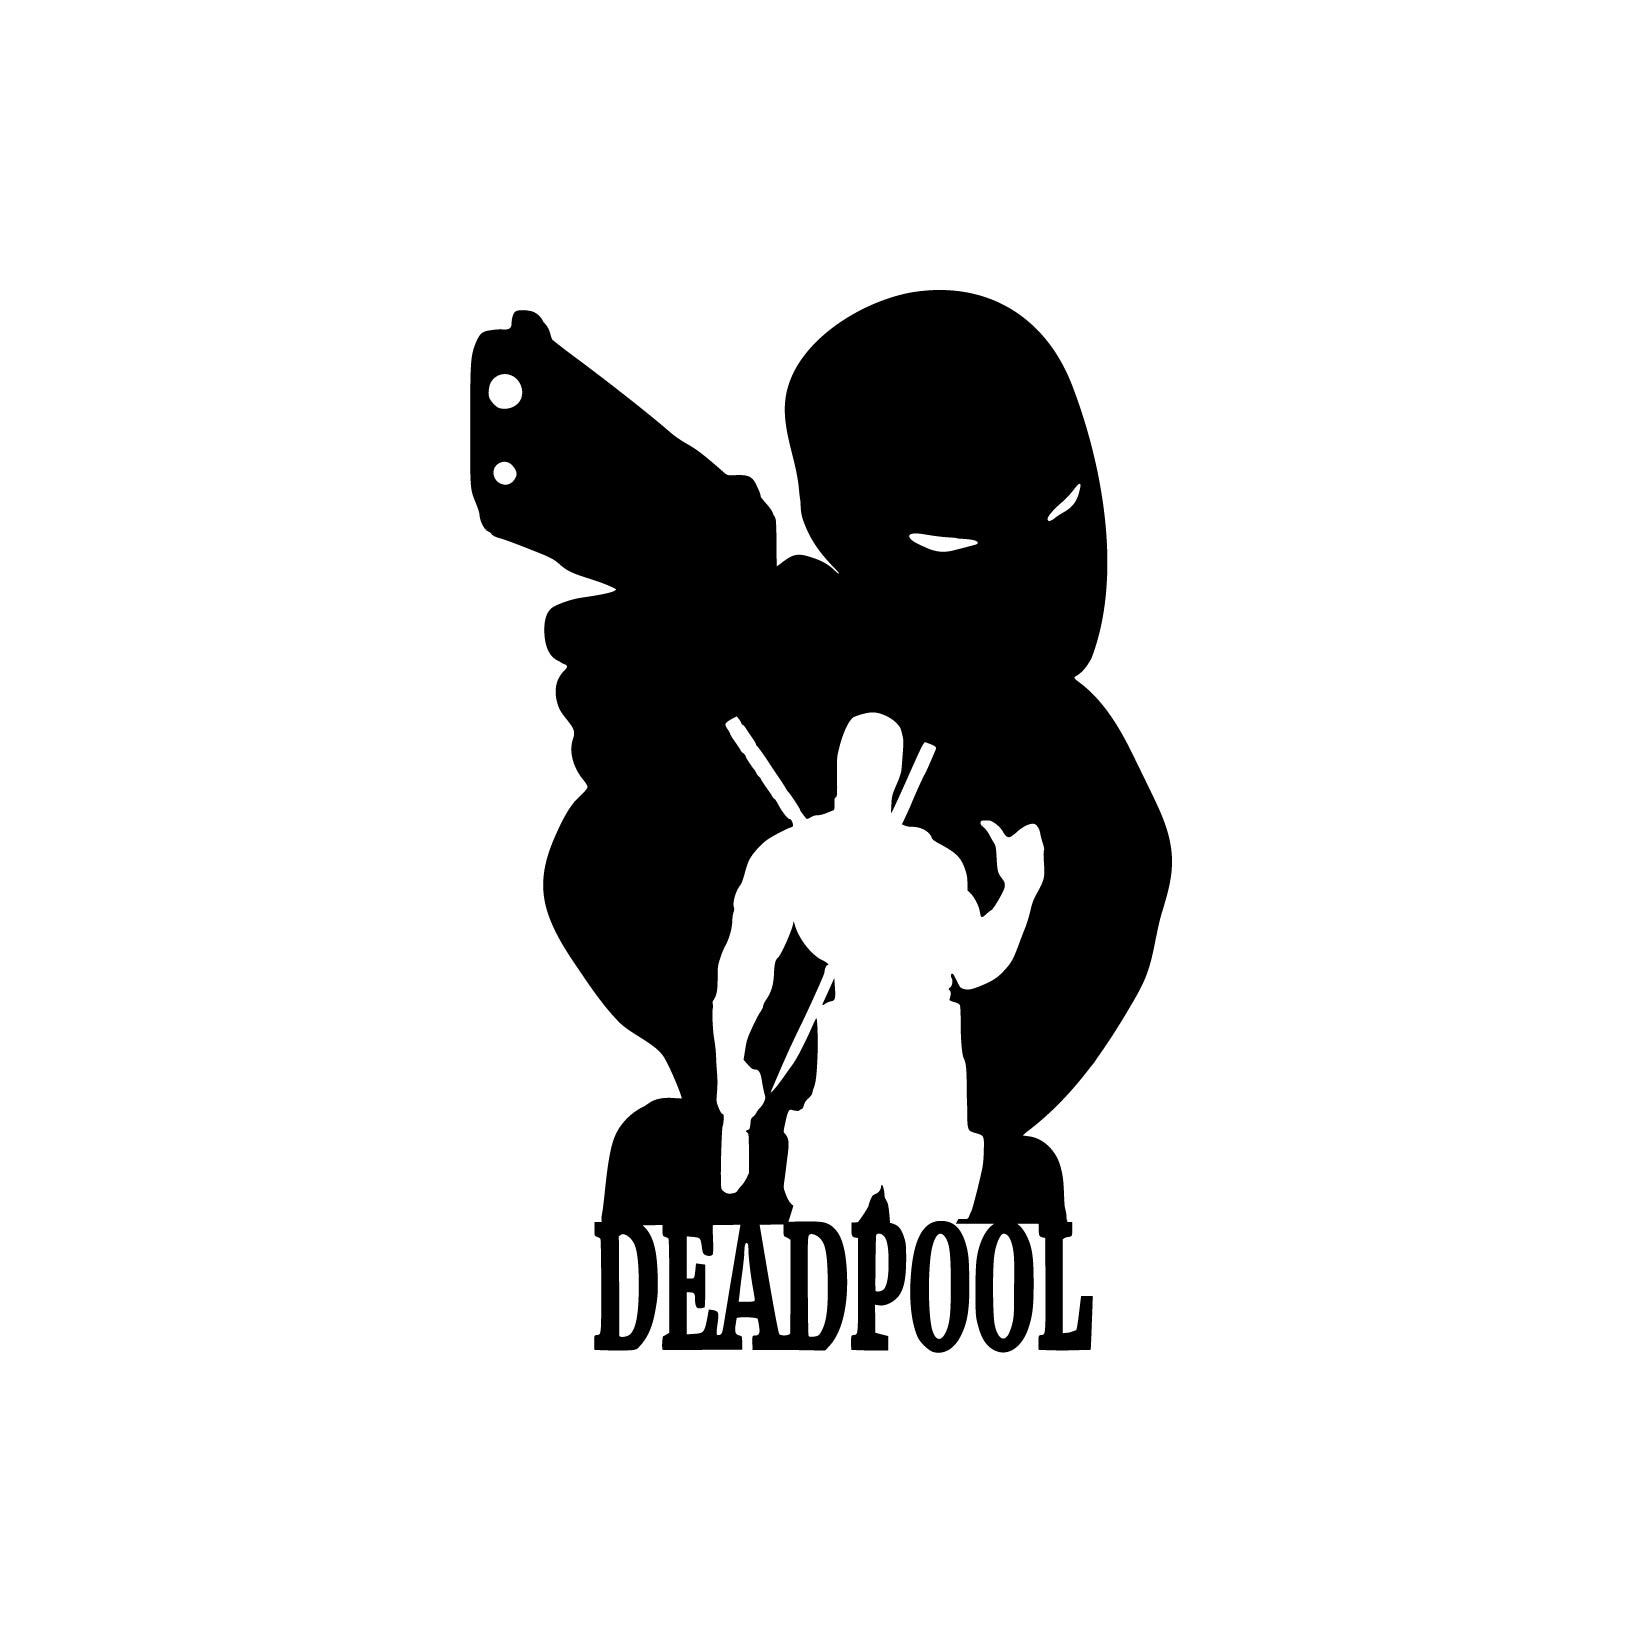 Deadpool 05 Superhero Graphics Design SVG DXF By